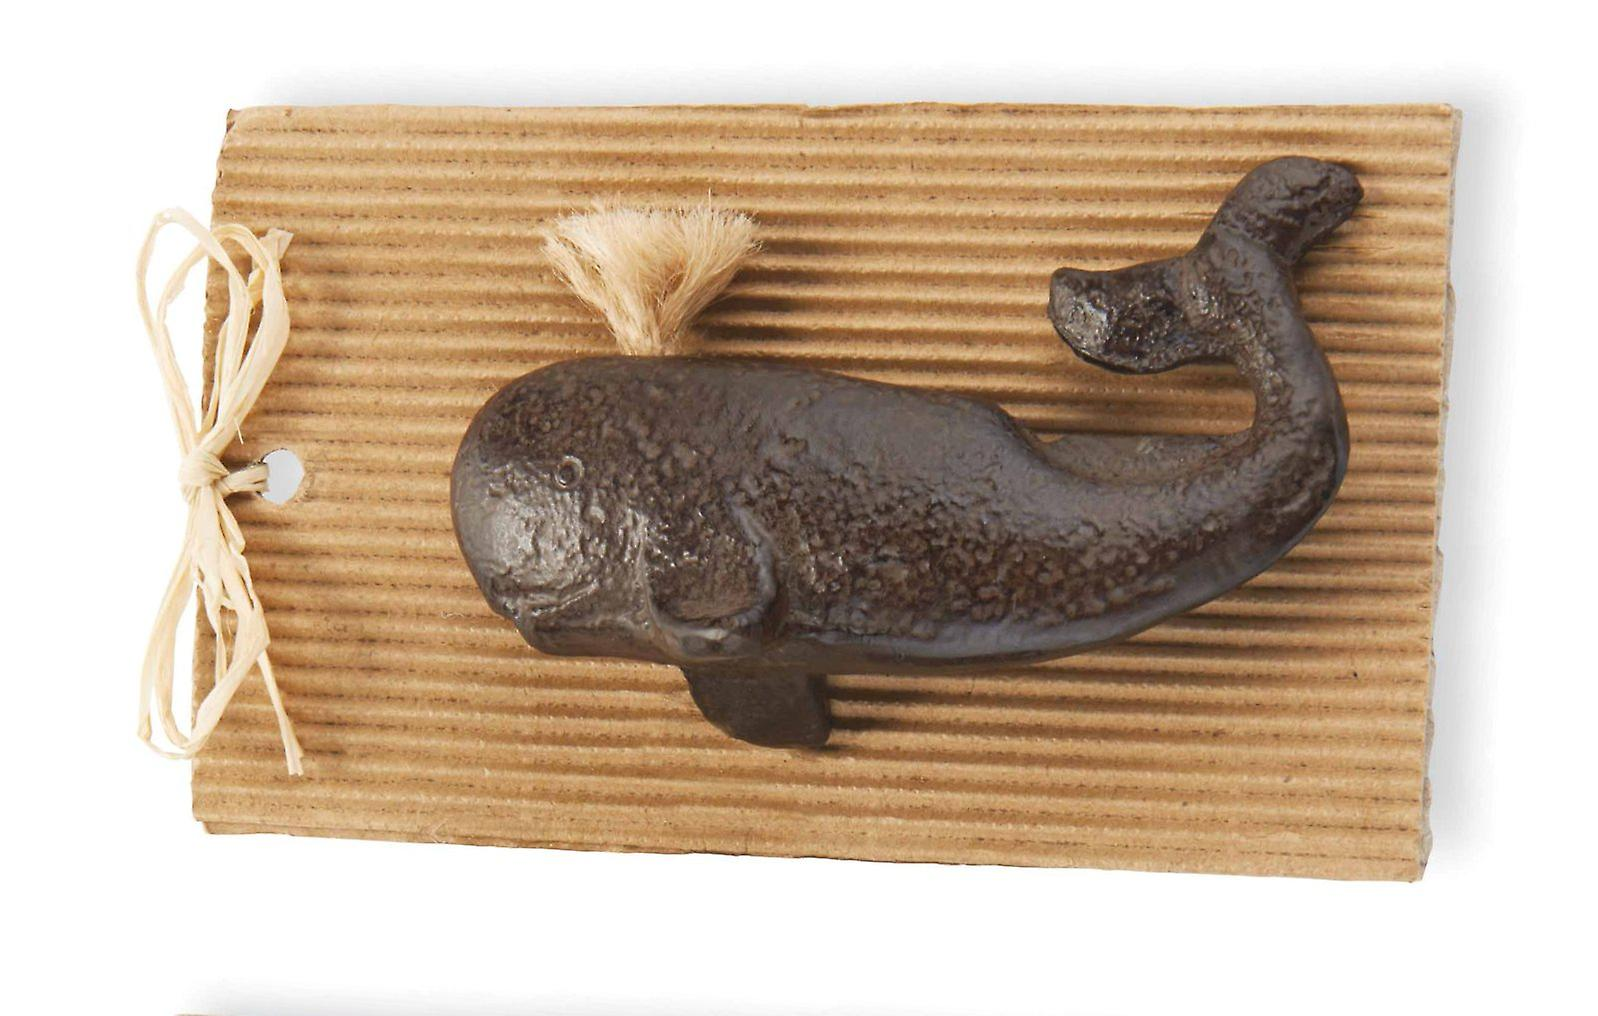 Spouting Whale Bottle Opener Coastal 4.5 Inch Cast Iron Mud Pie